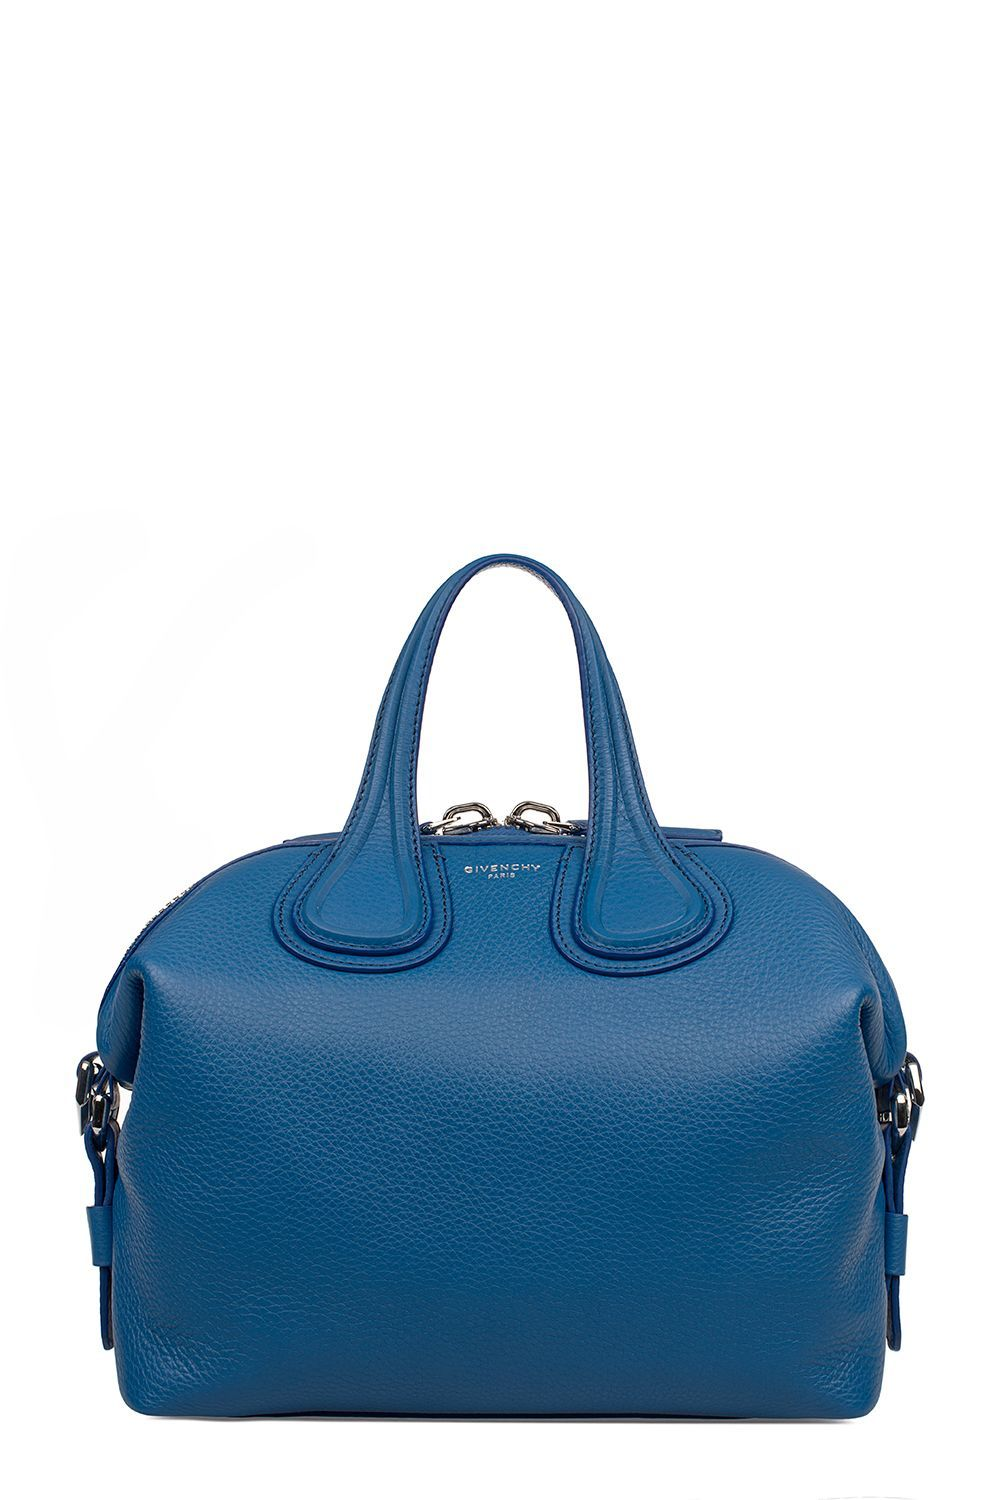 7229bf2e941 Givenchy - Indigo Small Nightingale Hammered Leather Top Handle Bag -  BB05096025 415, Women s Totes   Italist